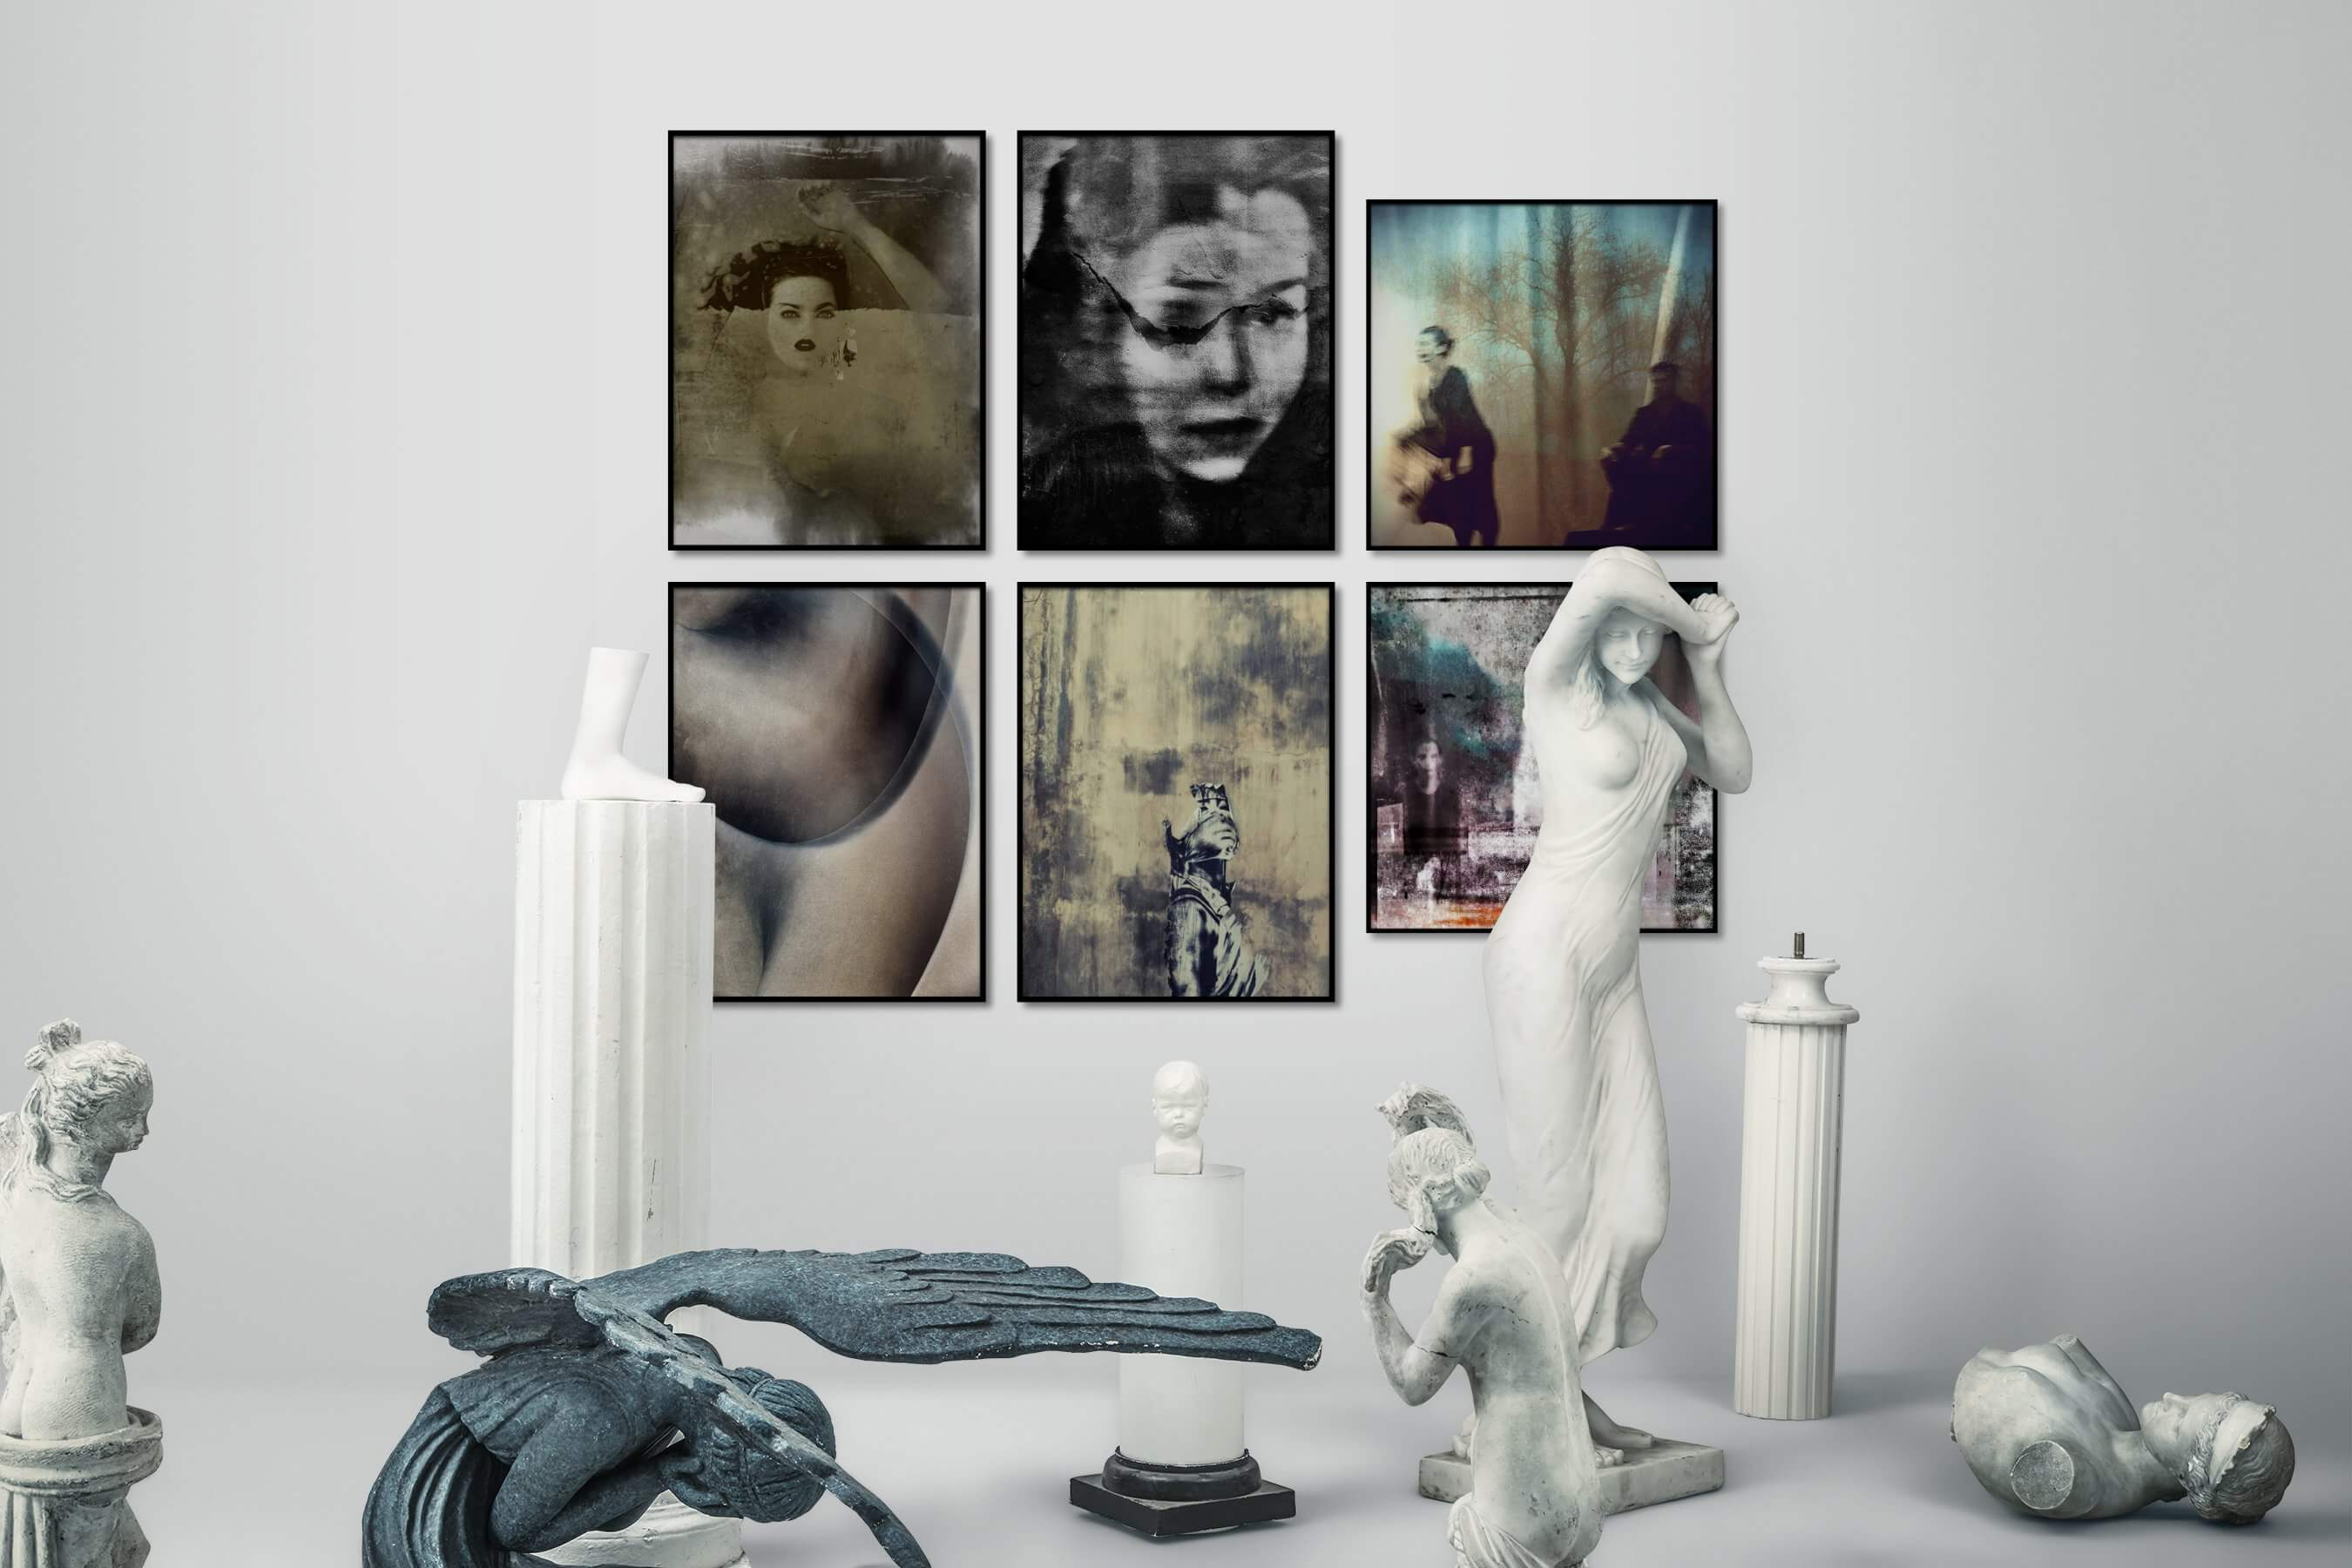 Gallery wall idea with six framed pictures arranged on a wall depicting Artsy, Black & White, For the Moderate, and Vintage